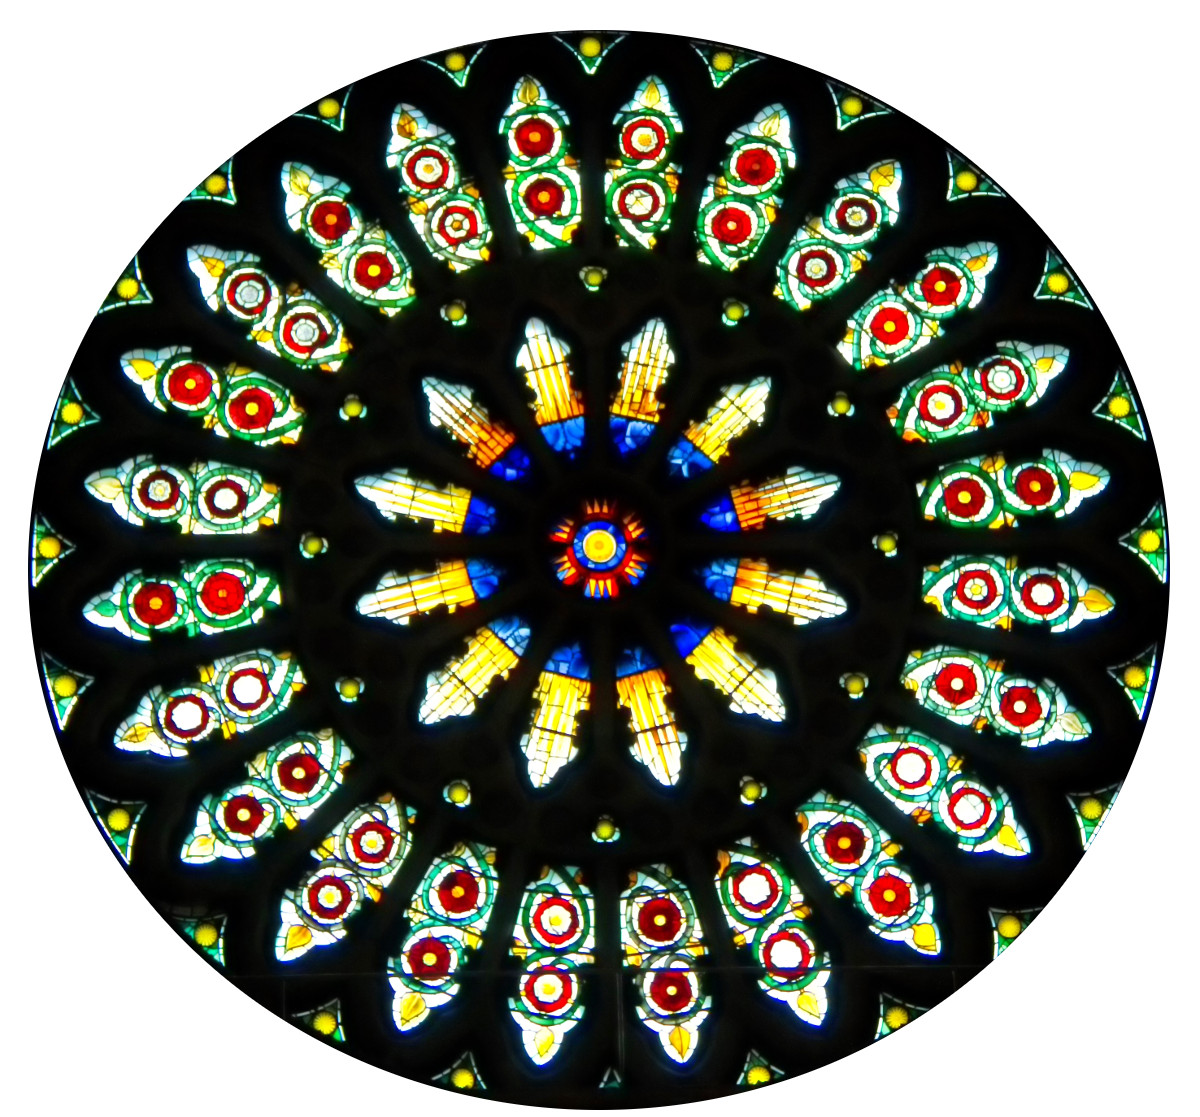 York Minster Rose Window. Credit Tony Hisgett